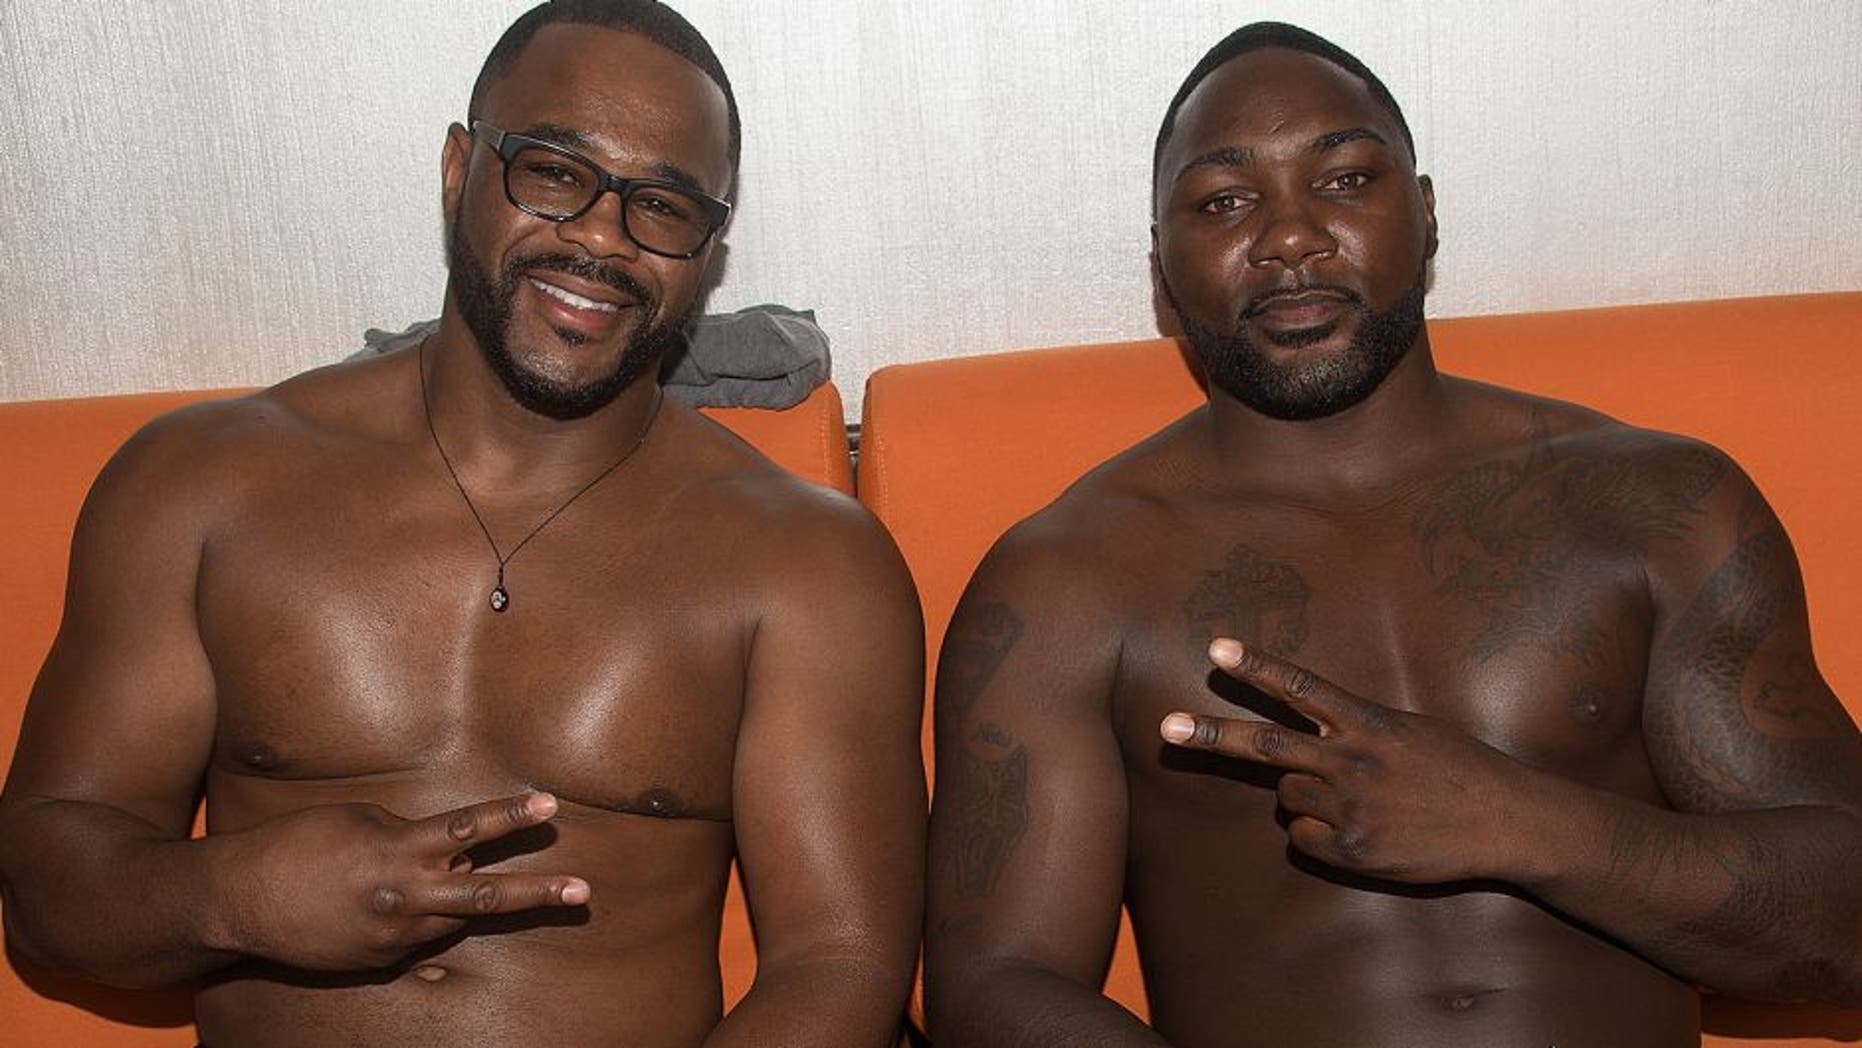 LAS VEGAS, NV - JULY 09: (L-R) Rashad Evans and Anthony Johnson pose for a photo during a UFC pool party as part of the International Fight Week events at the Liquid Pool Lounge at the Aria Resort & Casino at CityCenter on July 9, 2015 in Las Vegas, Nevada. (Photo by Al Powers/Zuffa LLC/Zuffa LLC via Getty Images)